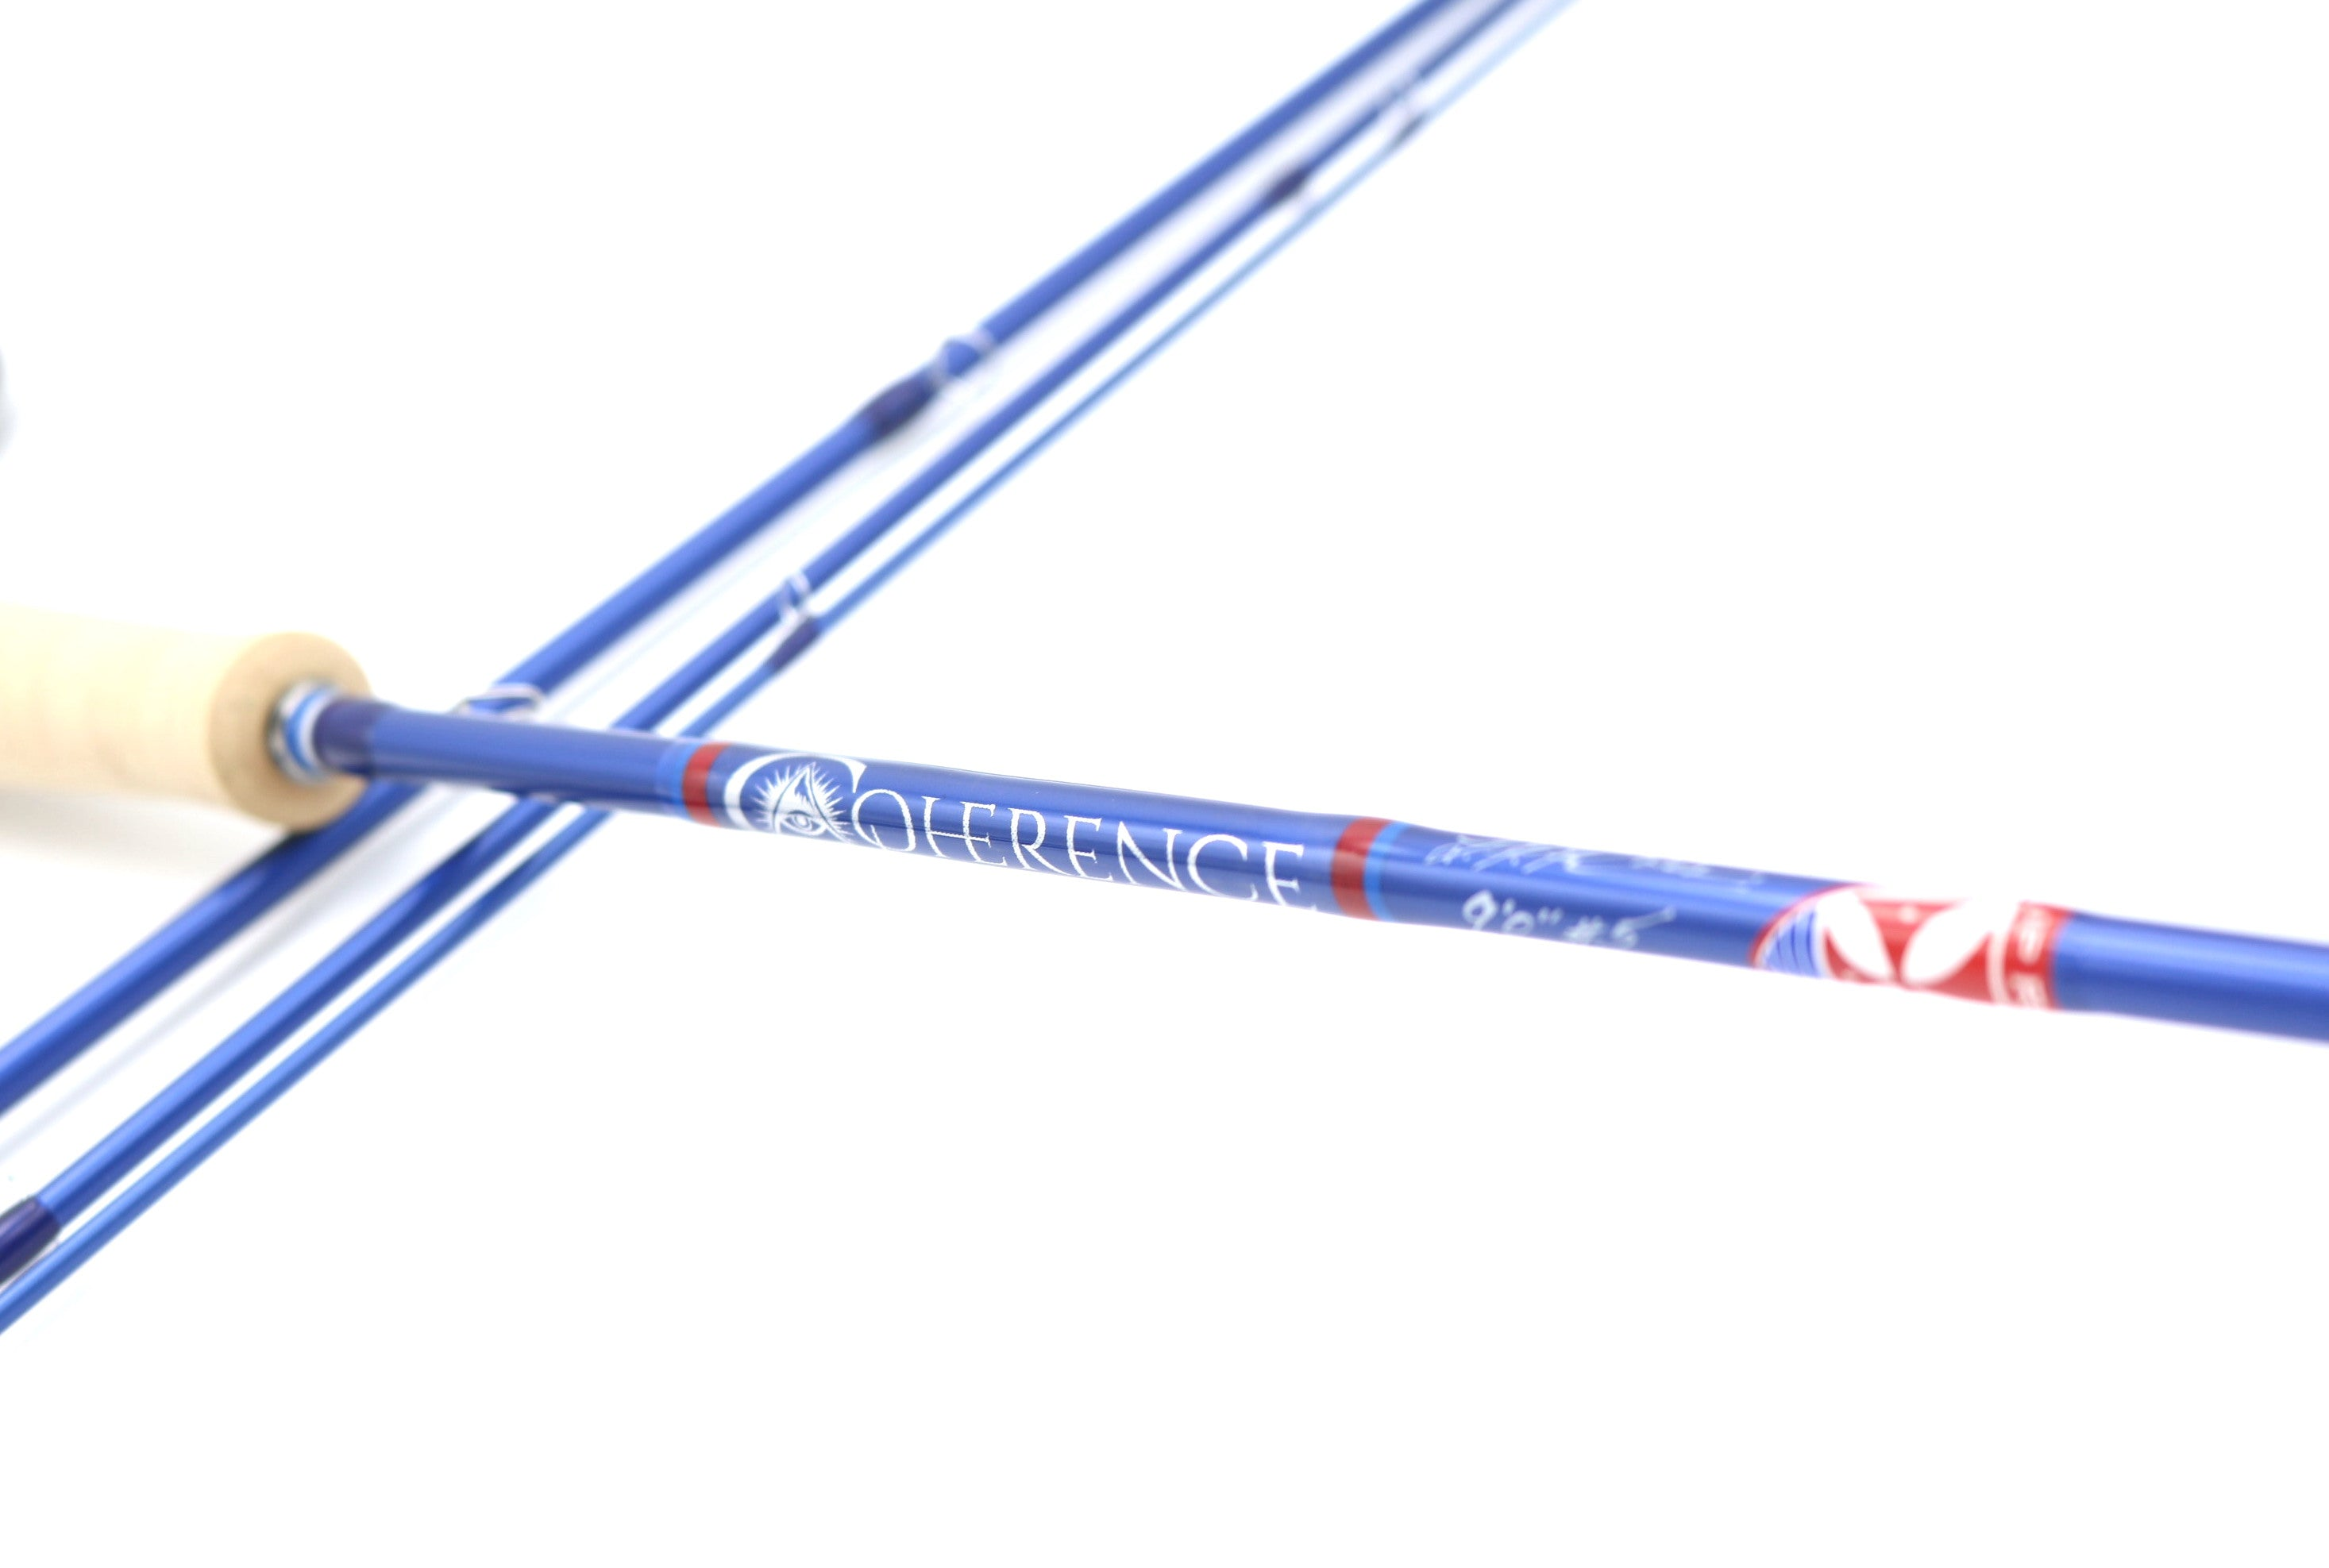 Coherence plus 9 foot 4 piece fast action